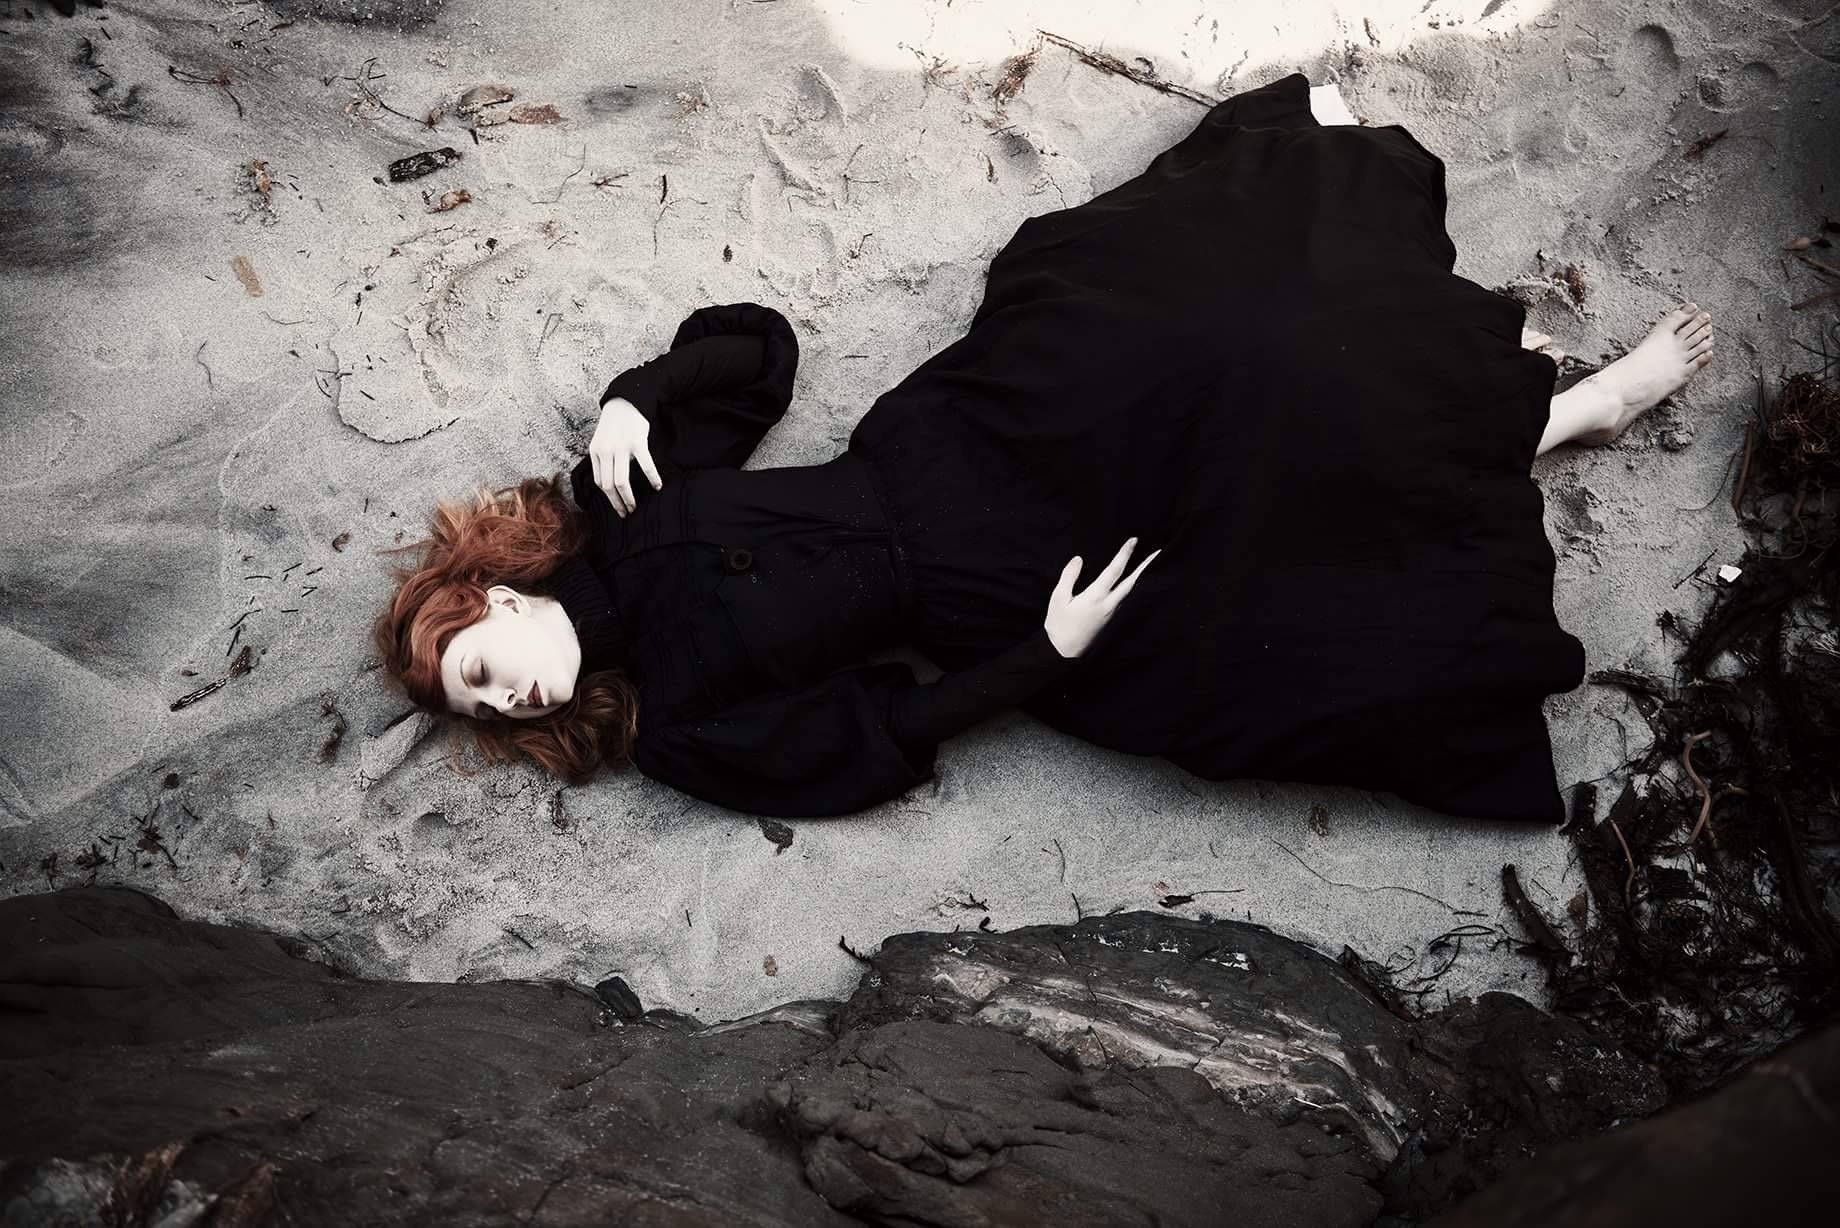 Nicola Wilson, photography, dark, obscure, conceptual photography